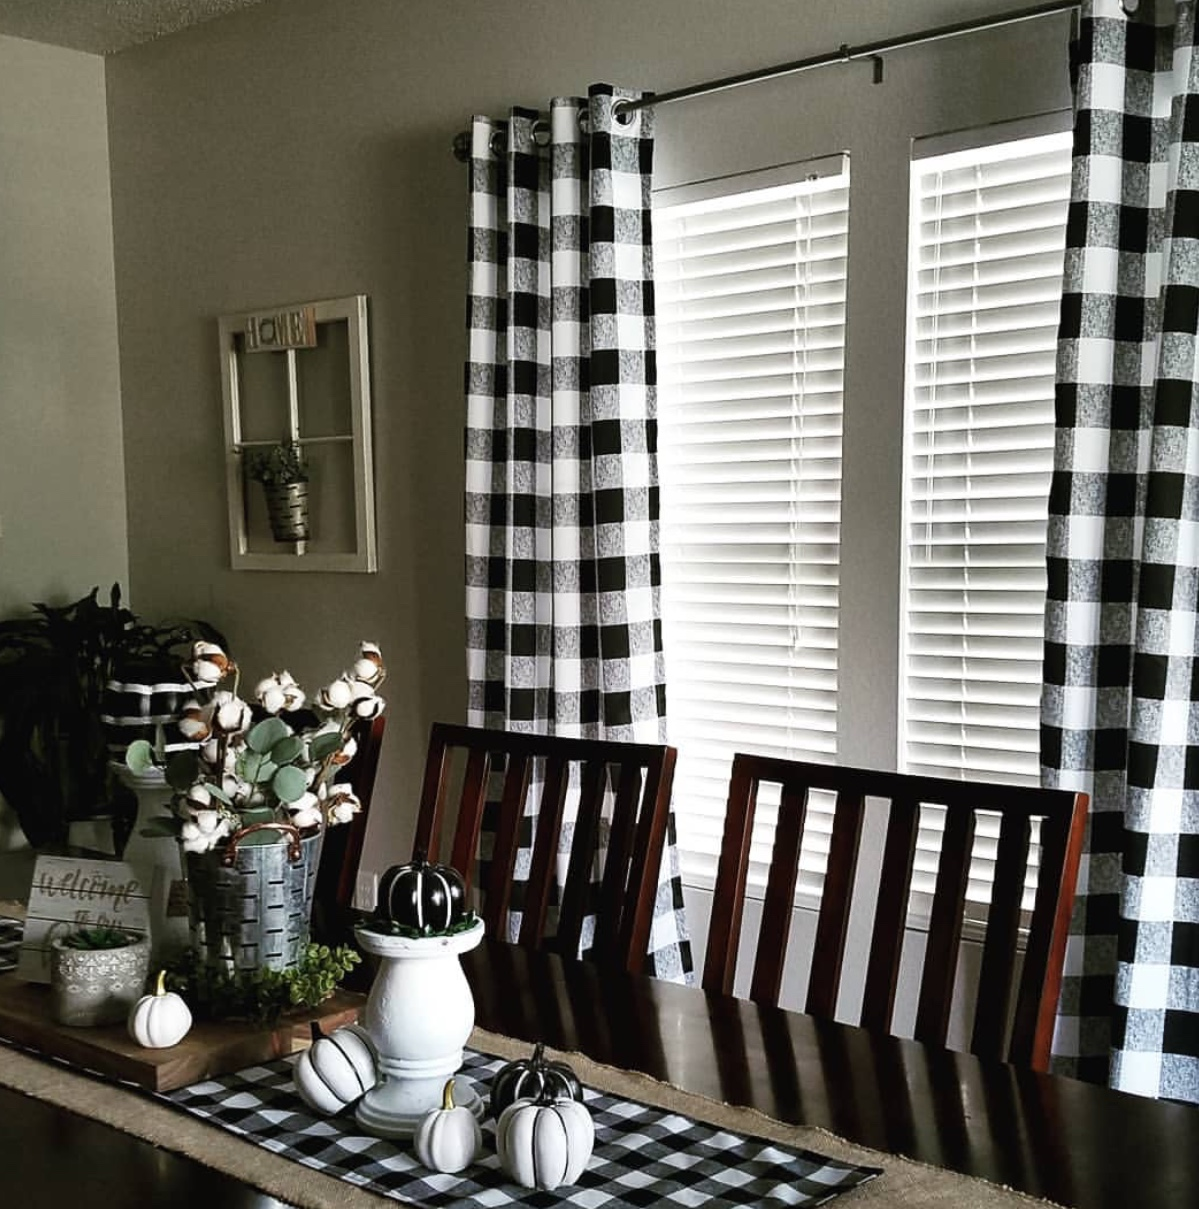 Buffalo check plaid curtains add the farmhouse look to your home all year round!